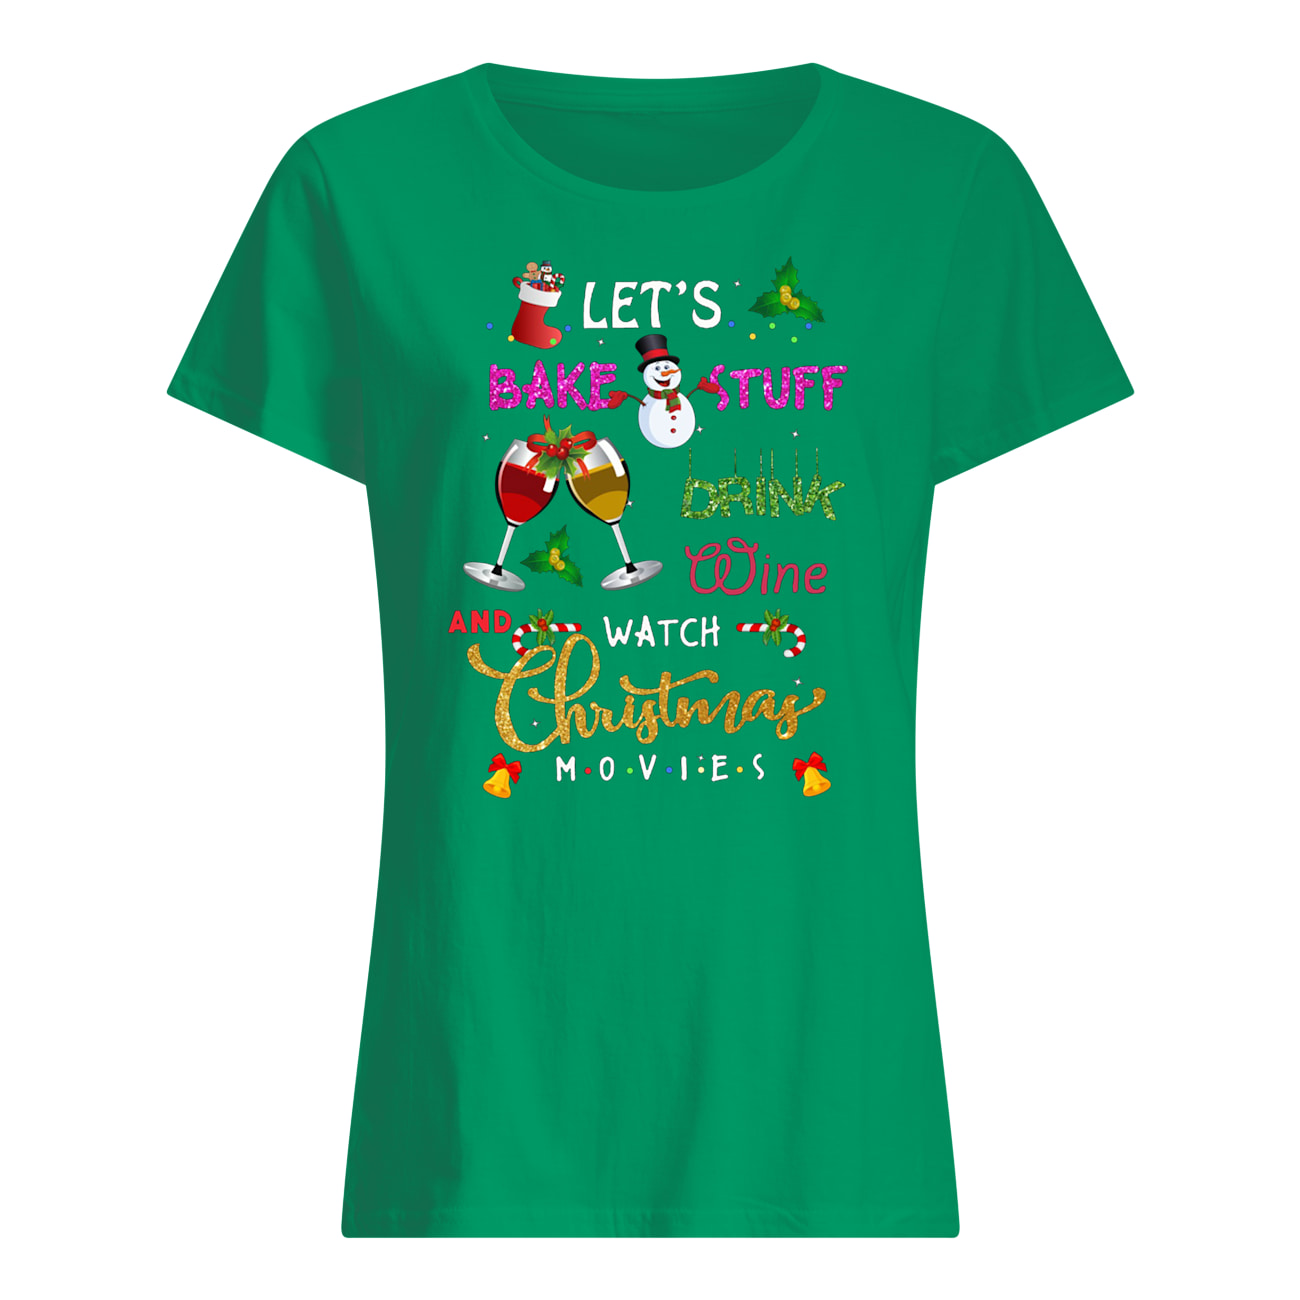 Let's bake stuff drink wine and watch christmas movies womens shirt